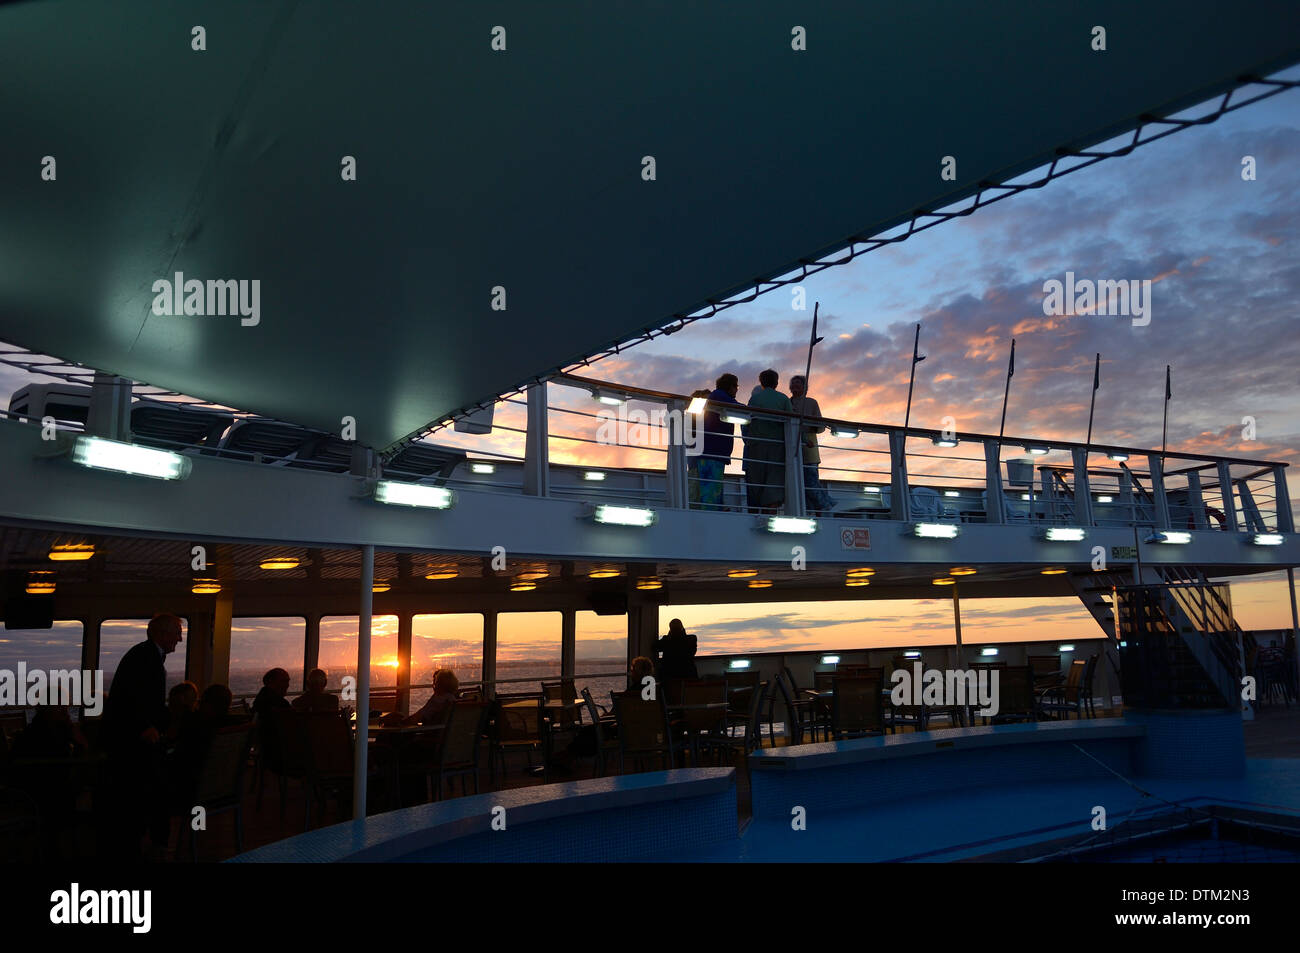 Passengers watching the the sunset on board the cruise ship Ocean Majesty. - Stock Image